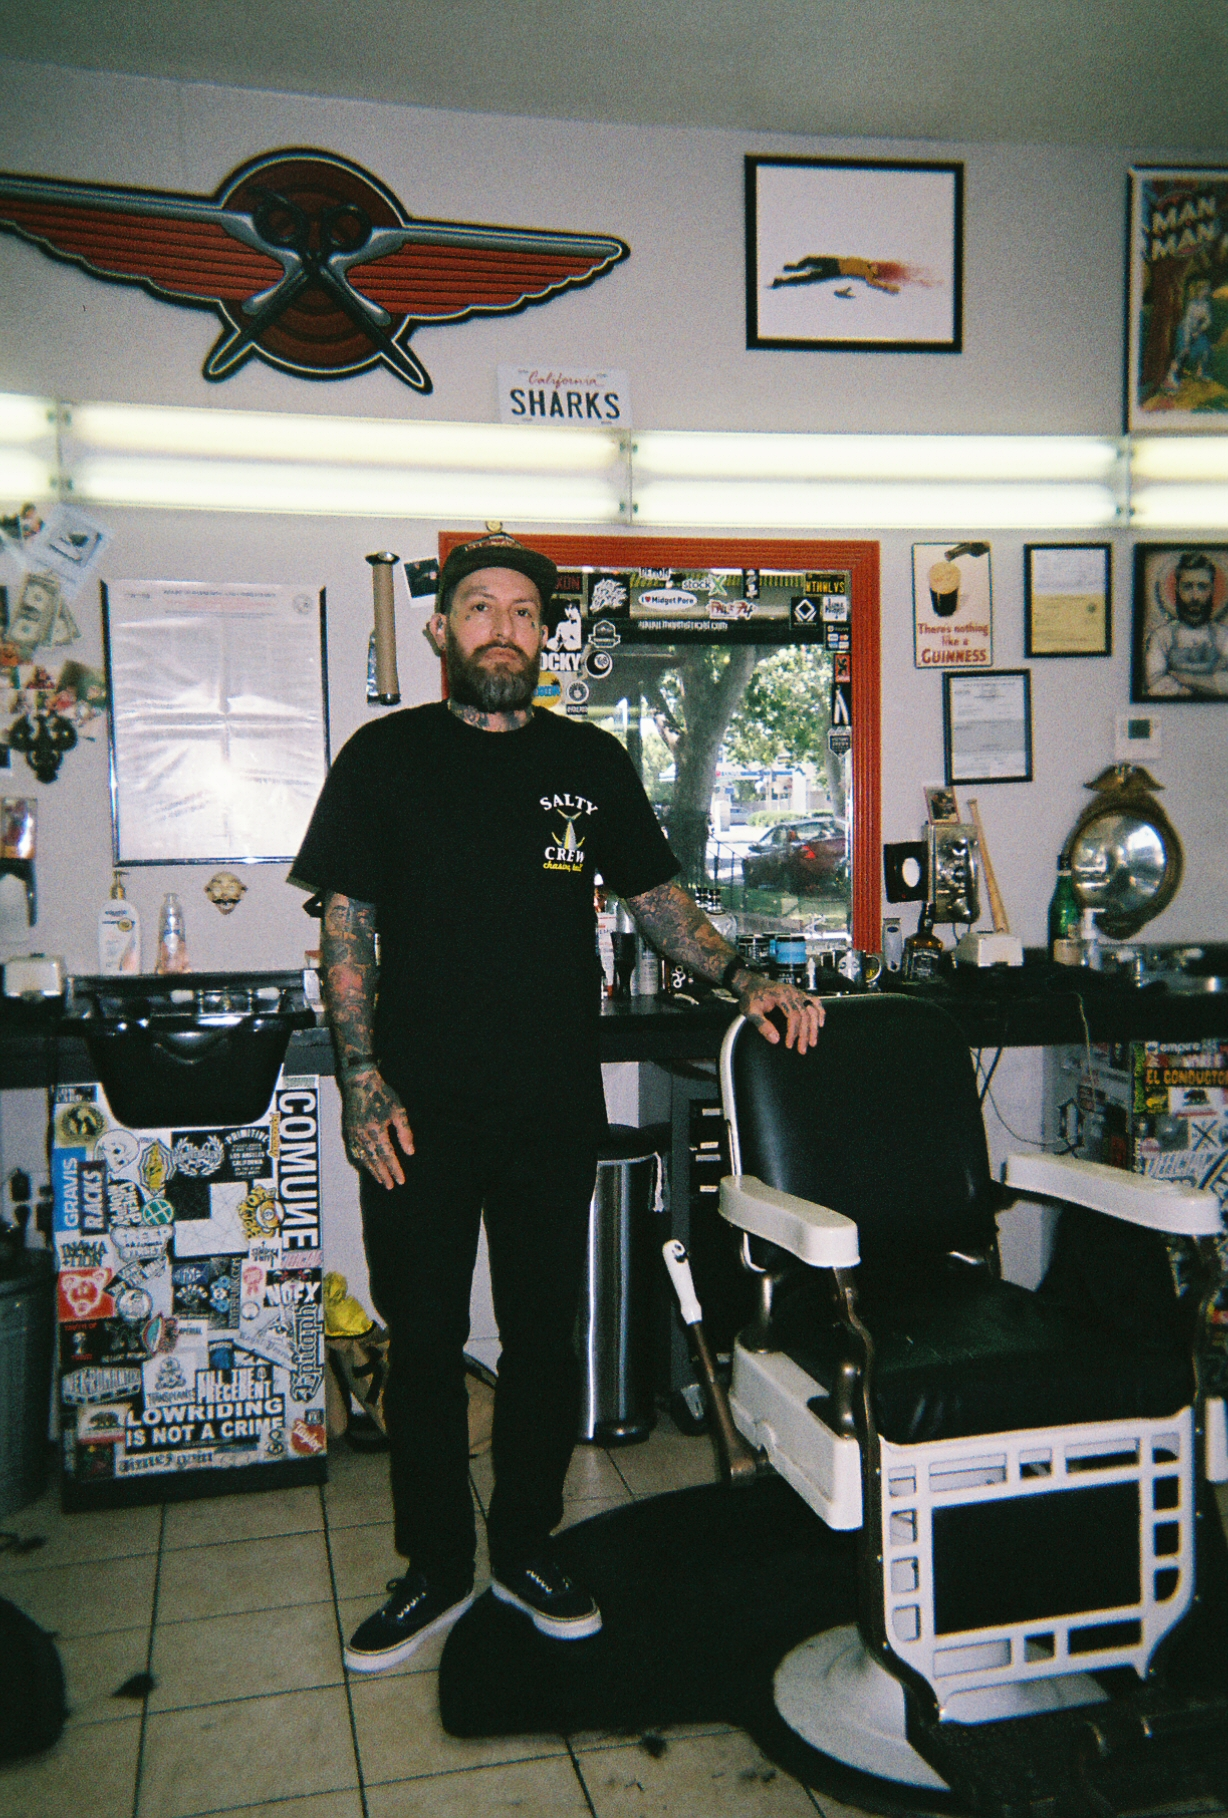 Anthony's Barber Shop - Nigel Martin @nigel91sixx